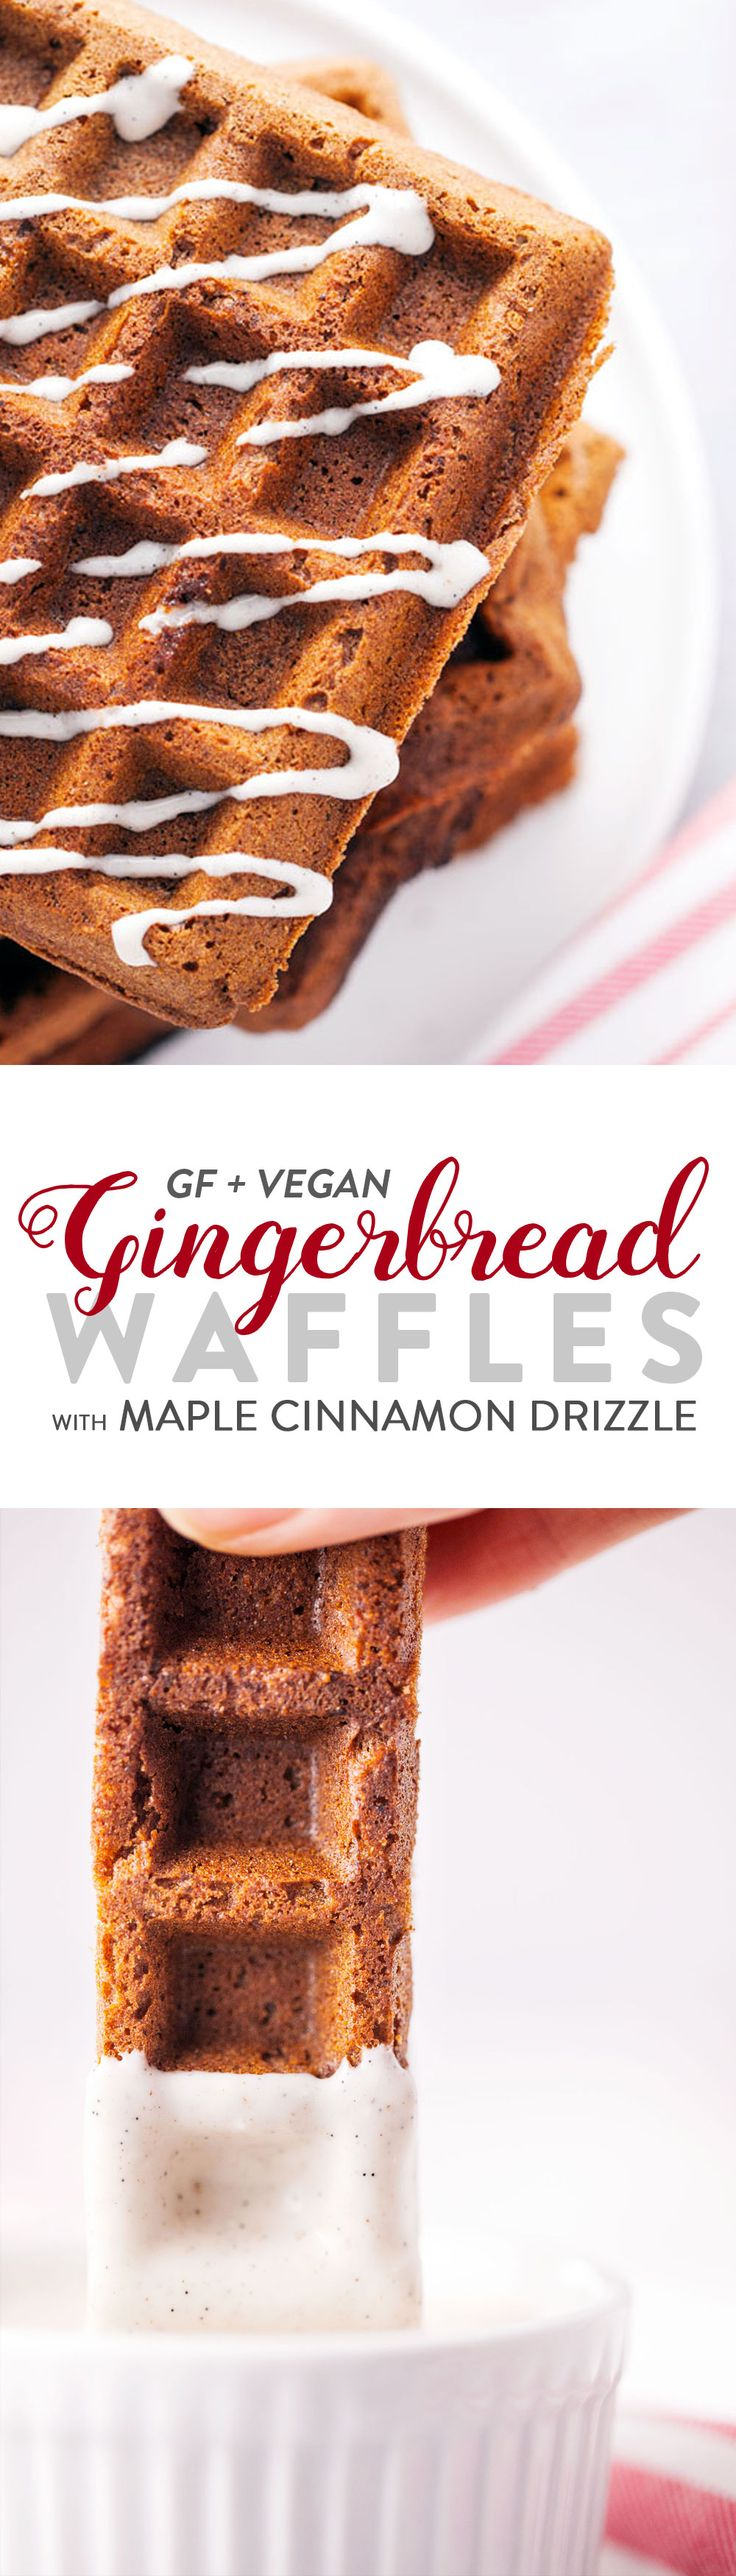 Holiday inspired waffles that taste like gingerbread cookies! But, you won't need to feel guilty about eating gingerbread for breakfast – they're loaded with gluten-free teff flour, holiday spices, and then topped with a vegan maple cinnamon drizzle. They also make perfect waffle sticks for dipping. A fun winter breakfast or brunch. Vegan & Gluten Free.